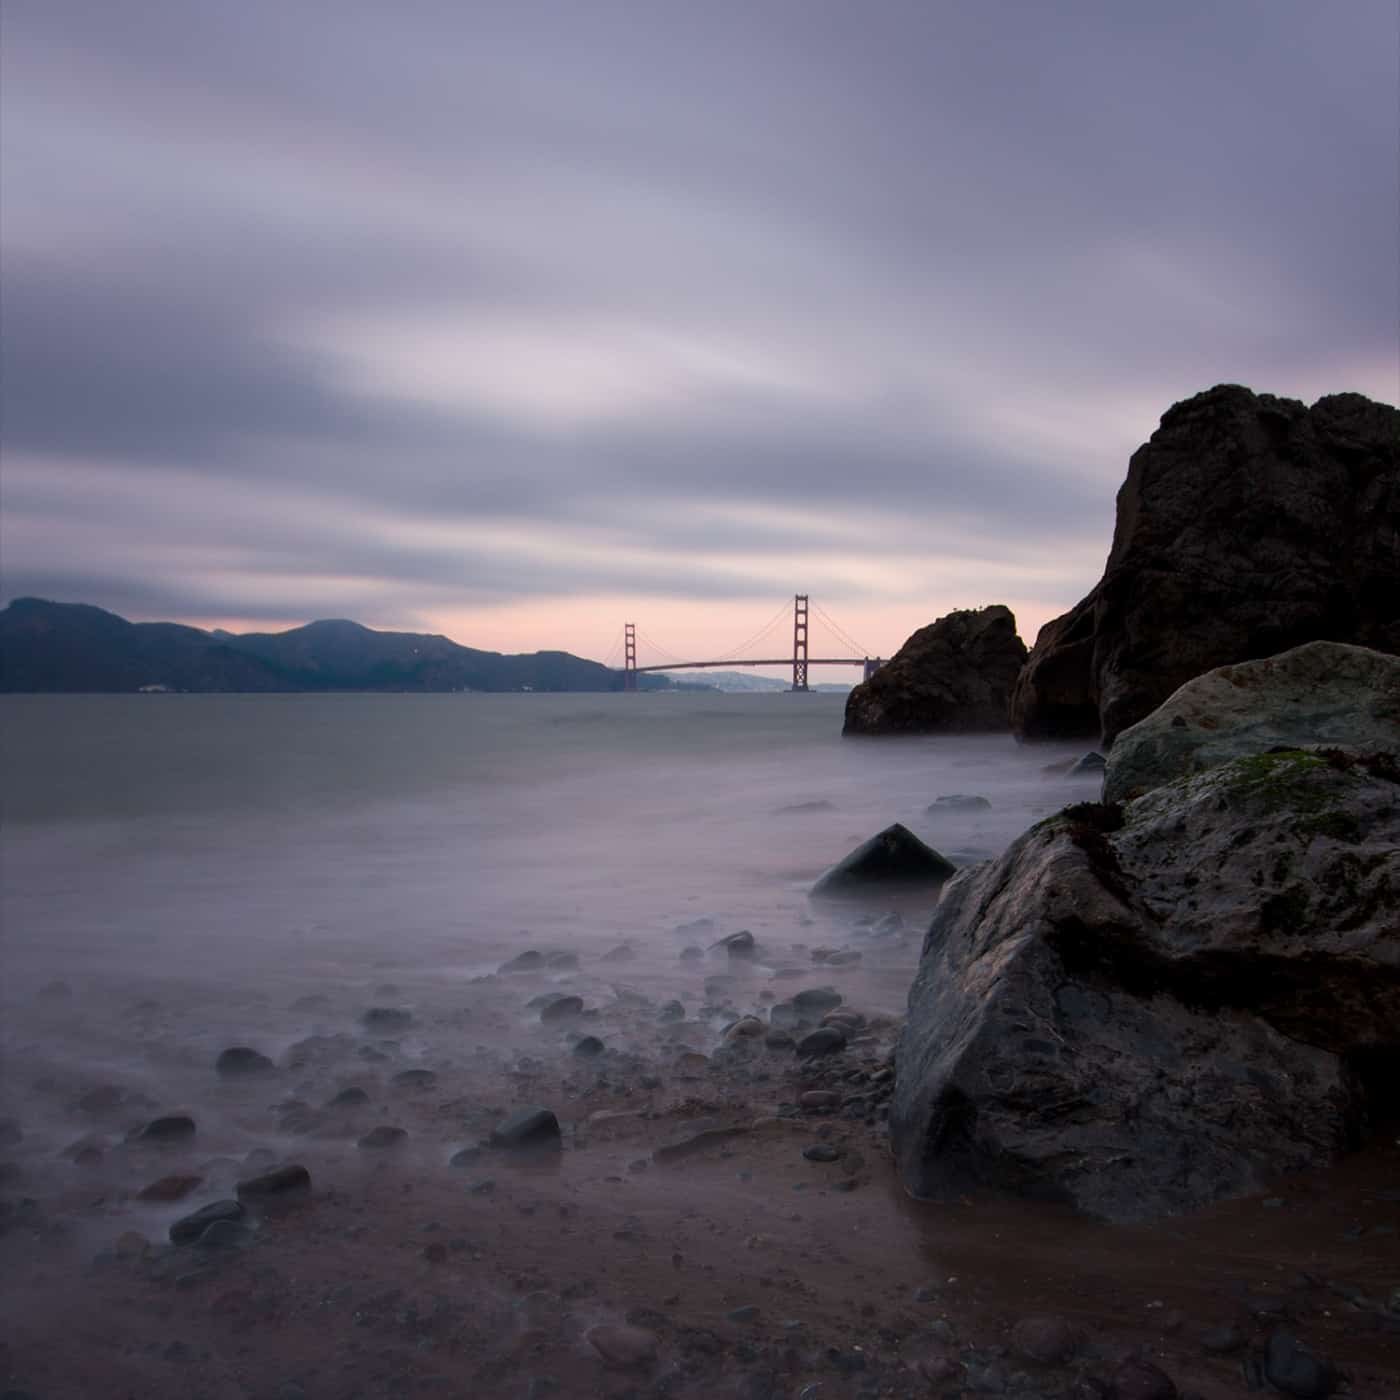 images-long-exposure-02